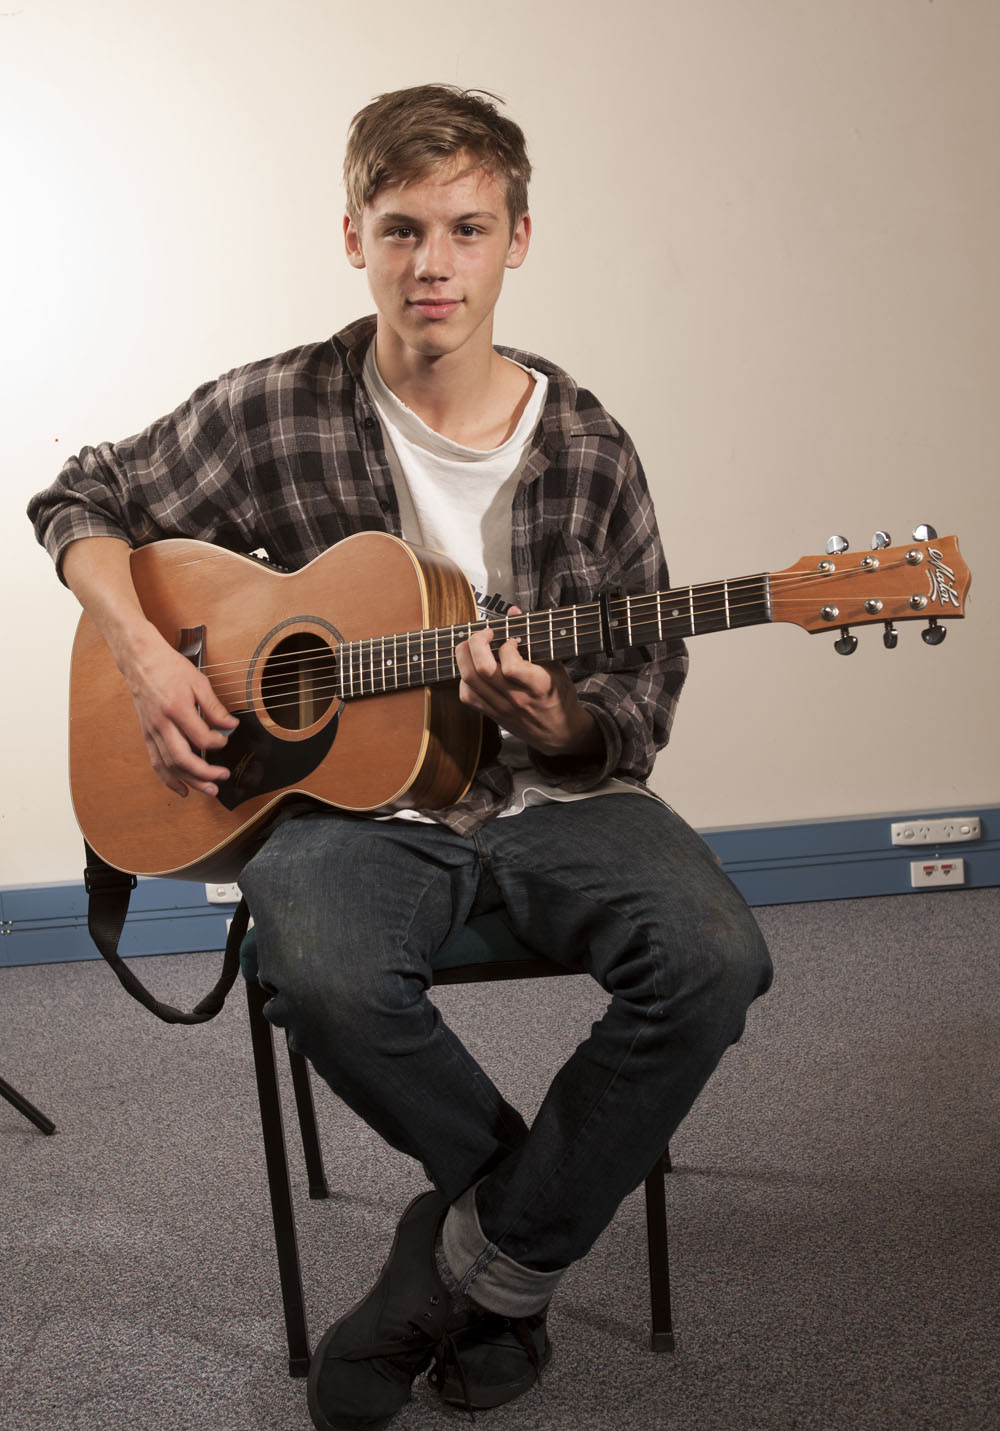 Ash Graham 16 year old singer songwriter who is one of the performers for NZ Music Month.